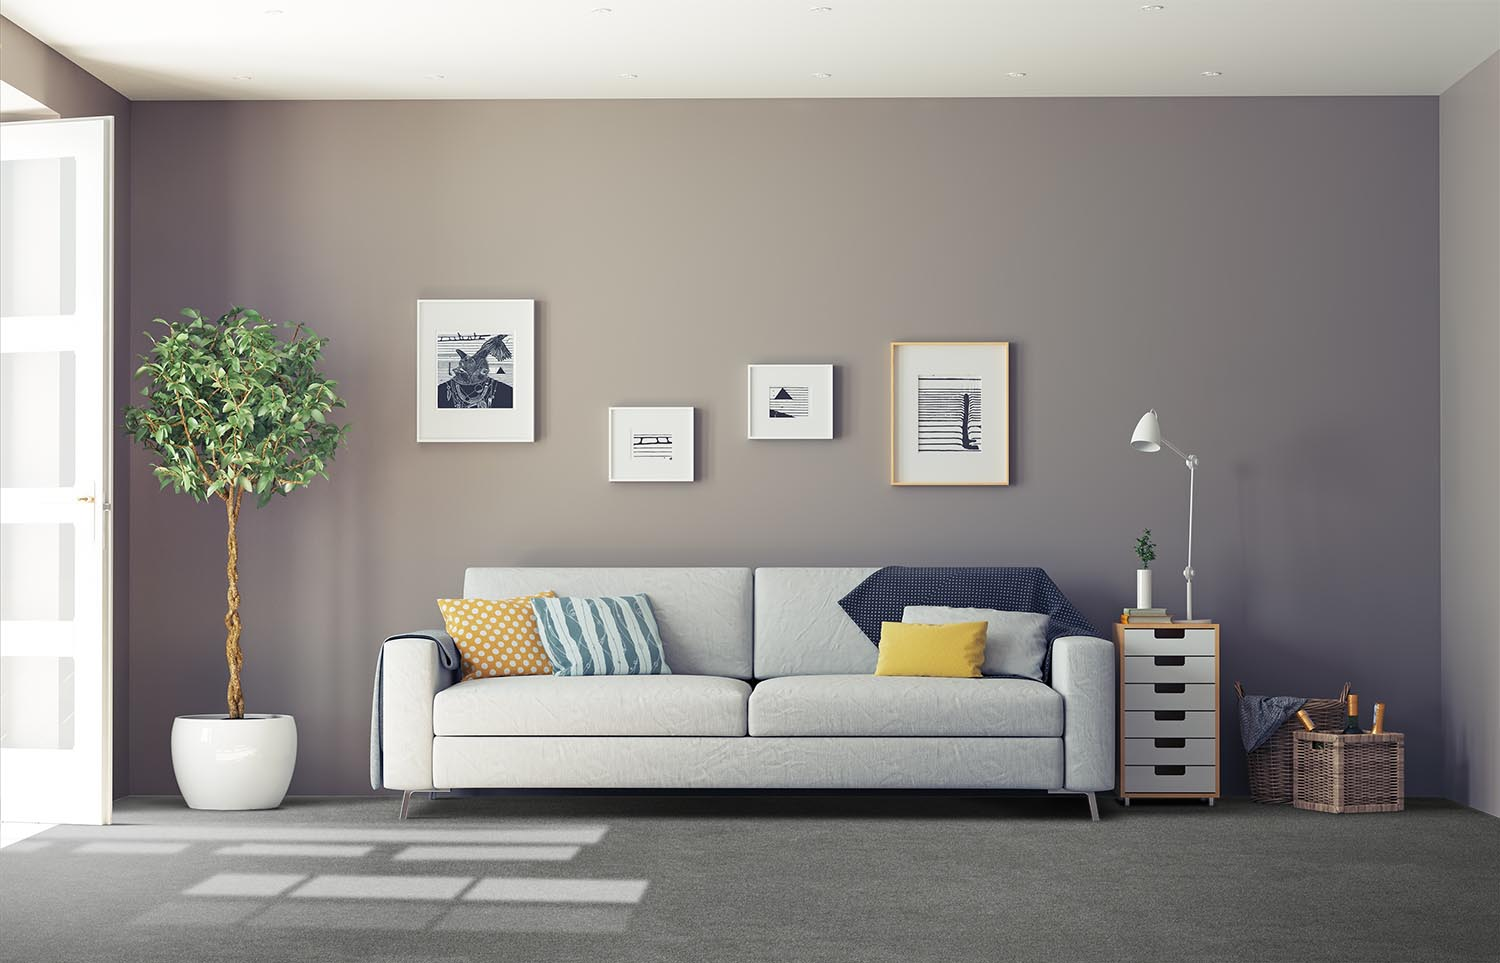 Softology - S201 - Brunia classic living room